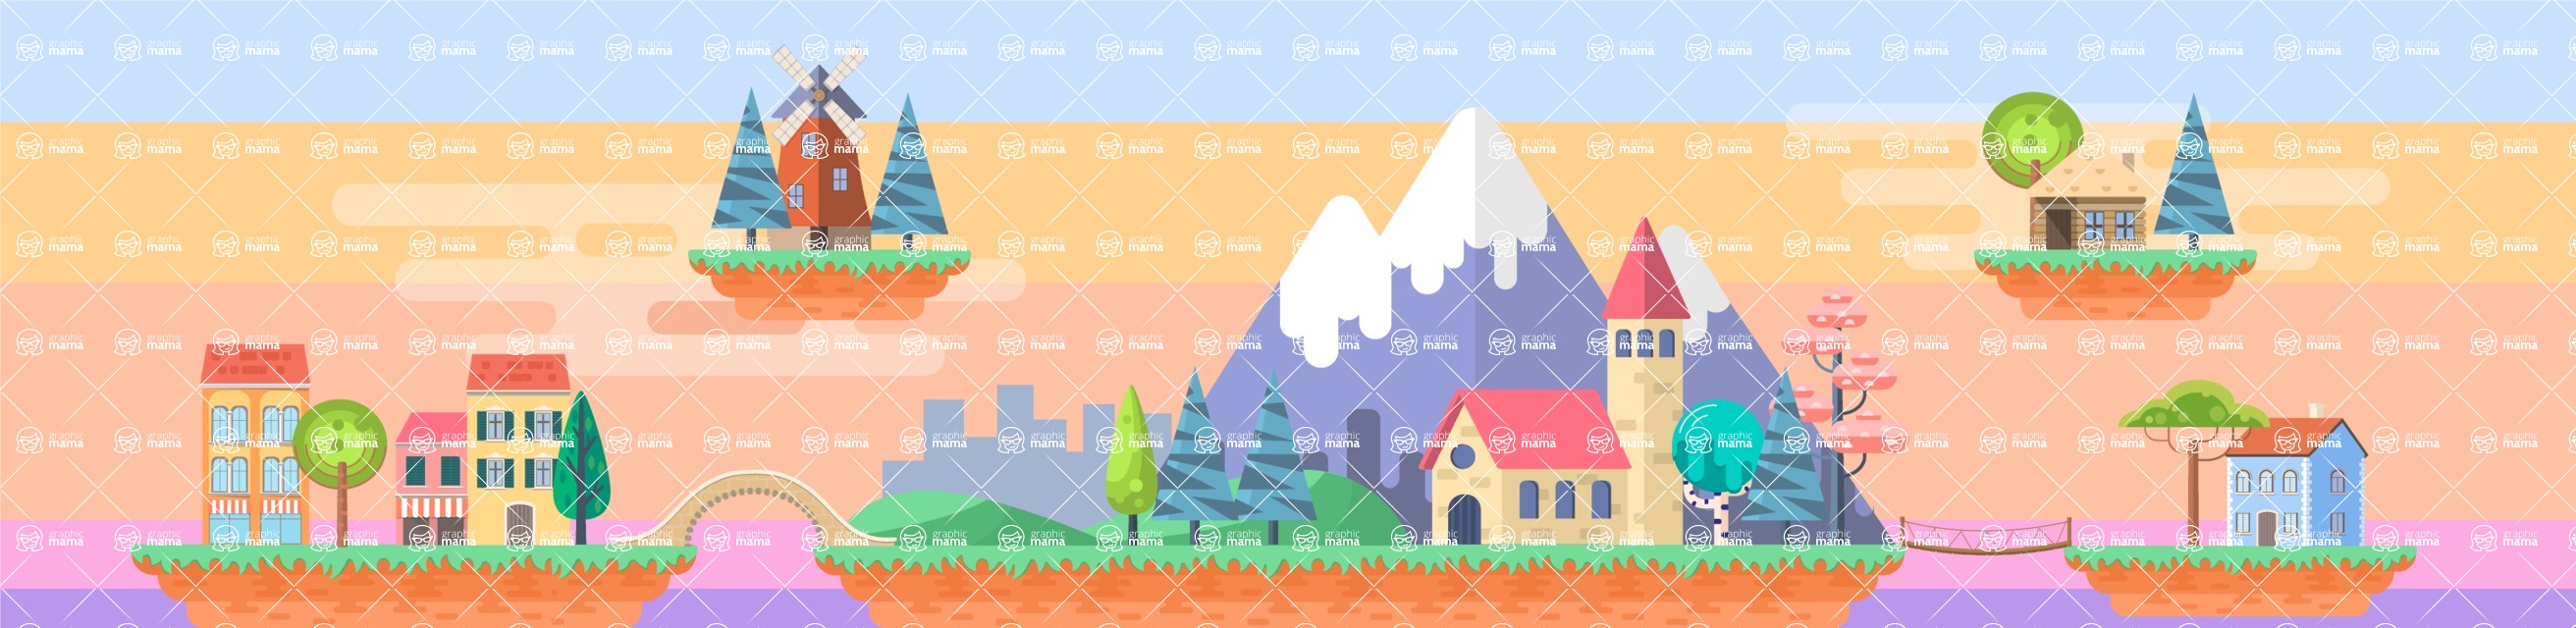 Background Vector Creation pack. A rich collection of flat vector elements for nature landscapes, city skylines, futuristic towns, fantastic scenes.  - Backgrounds 53